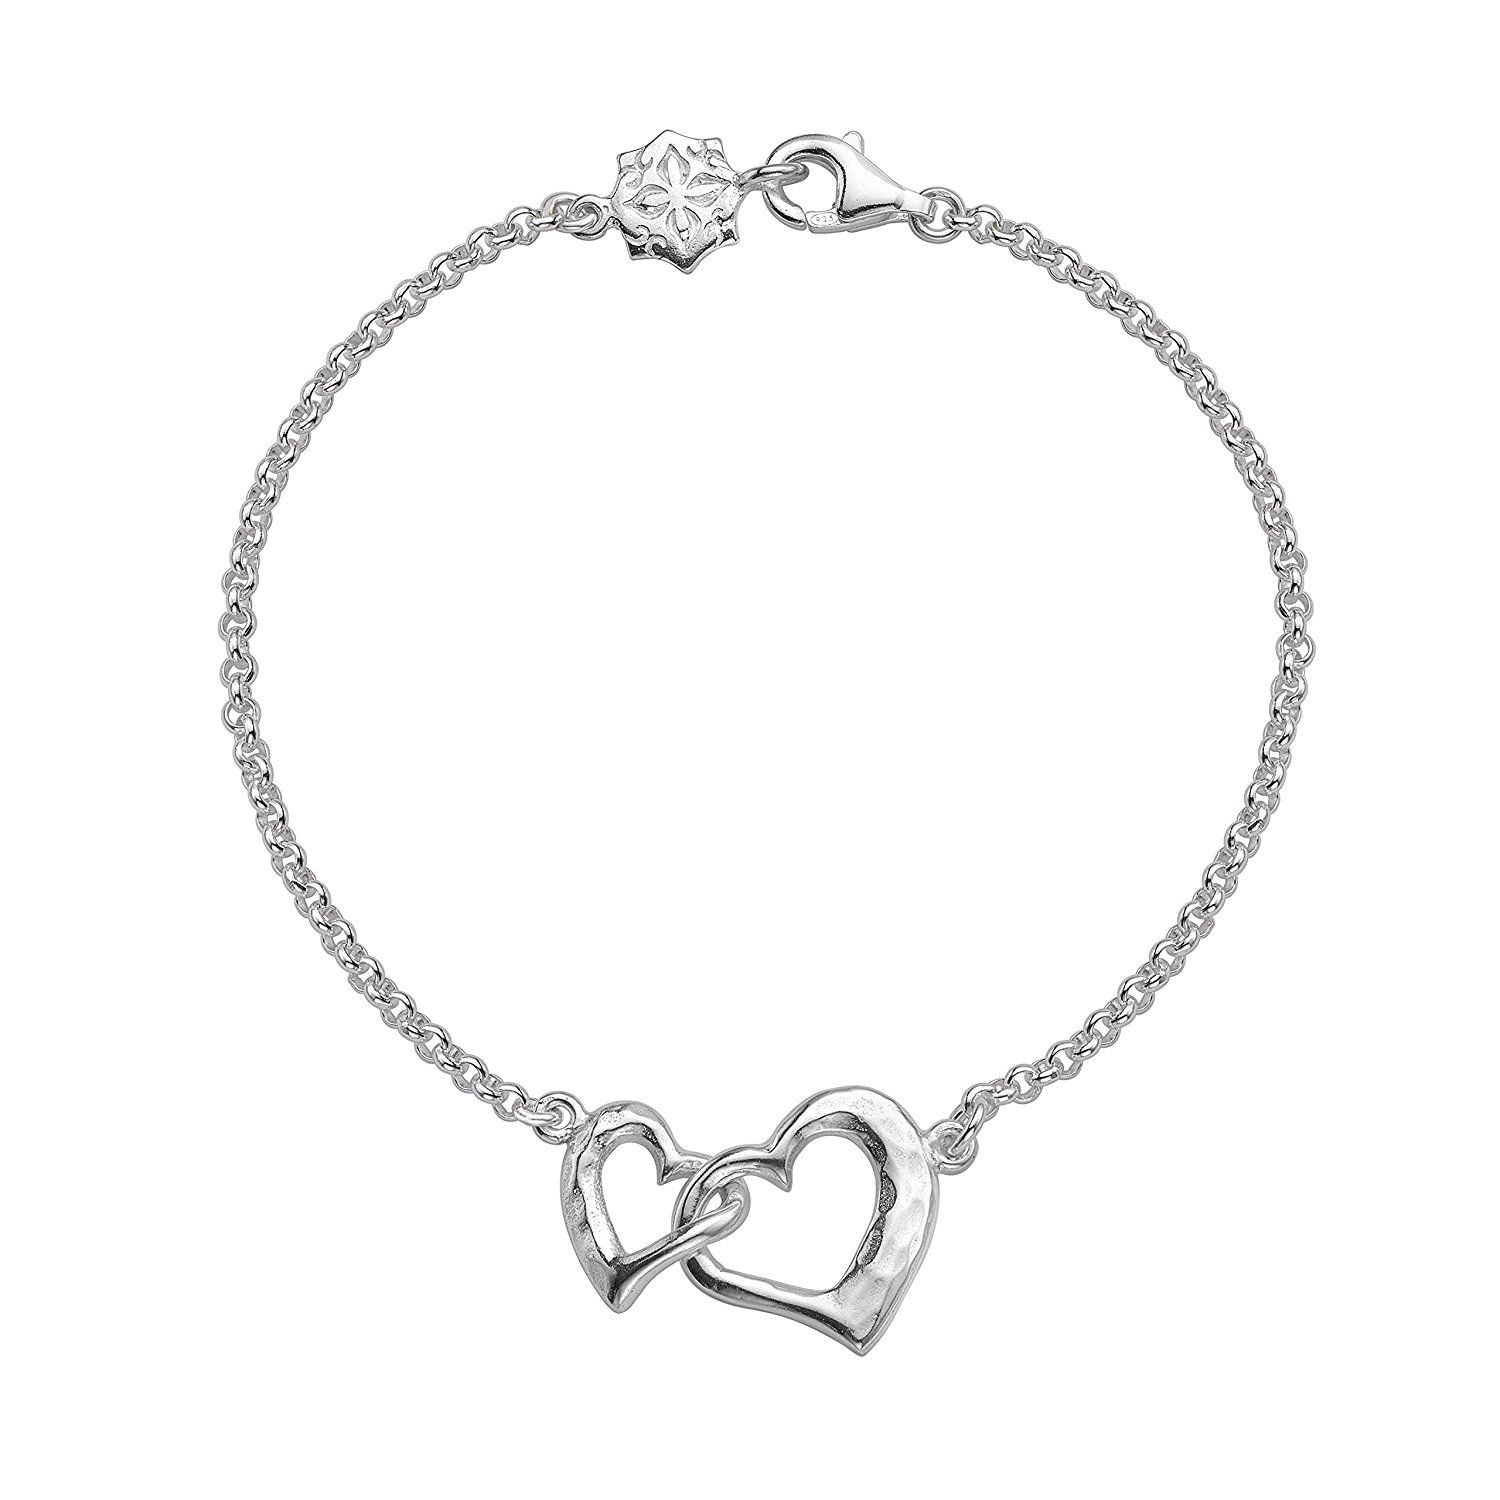 DOWER & HALL Entwined Sterling Silver Interlocking Circles Double Chain Bracelet of 18.5cm b1meF